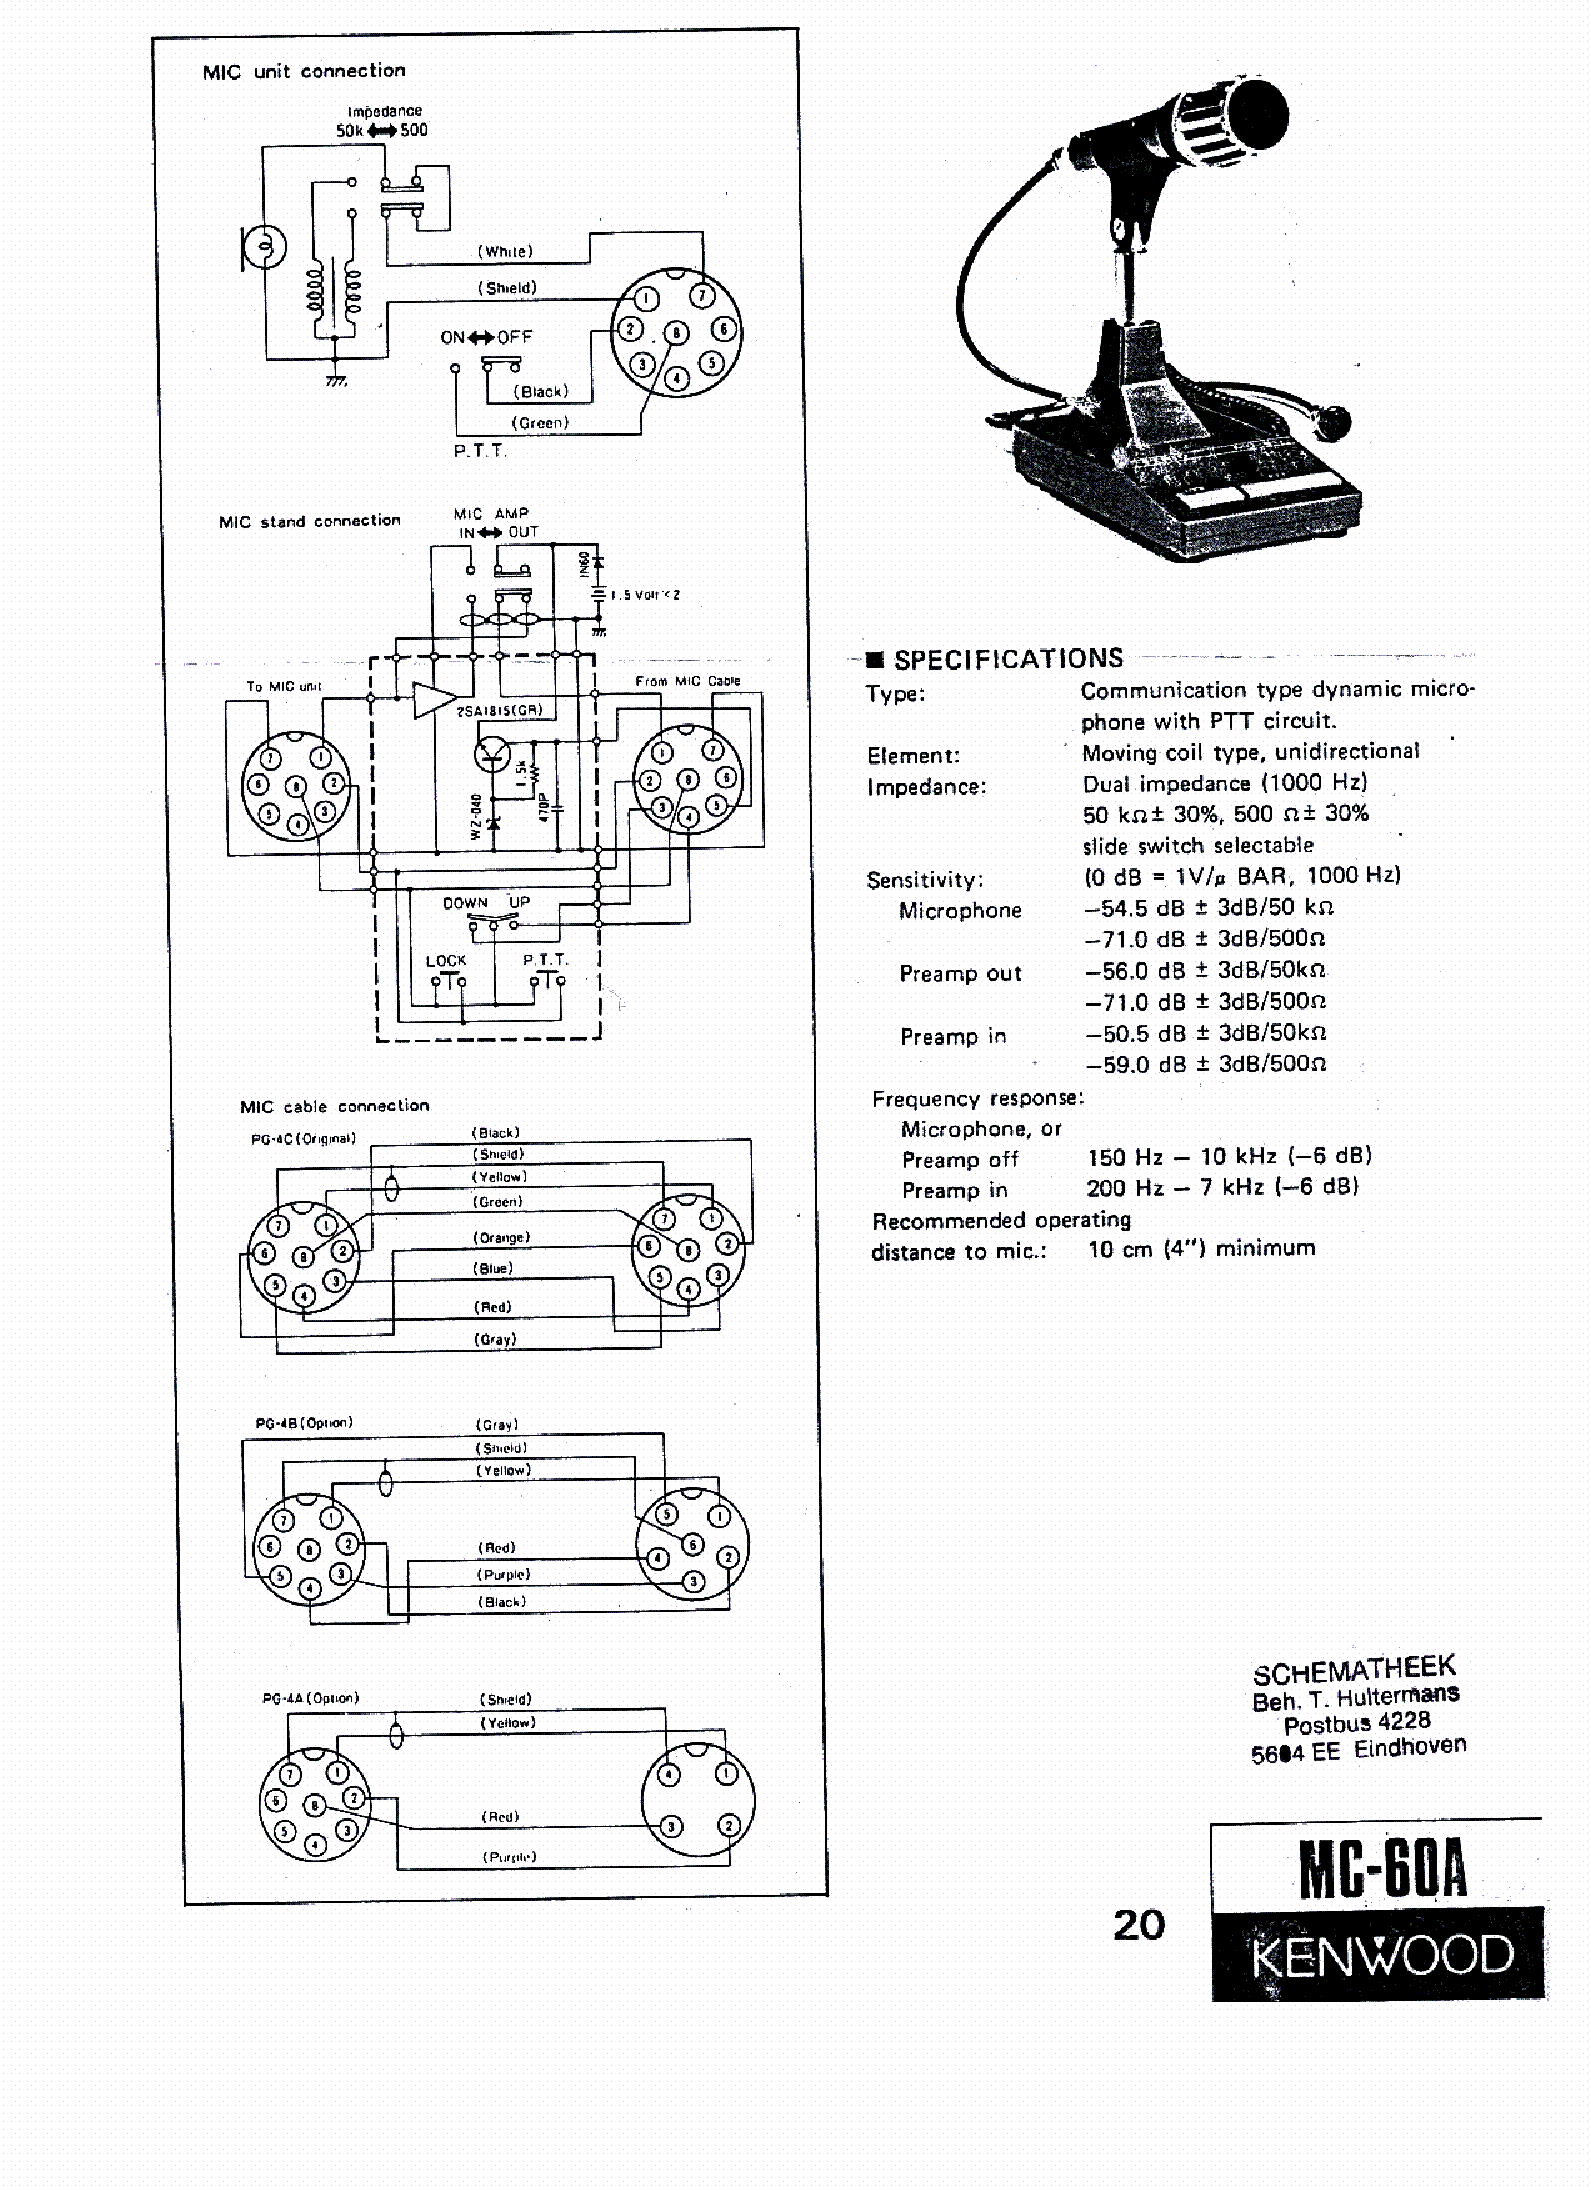 Kenwood Mc 60a Wiring Cost Of Converting Fuse Box To